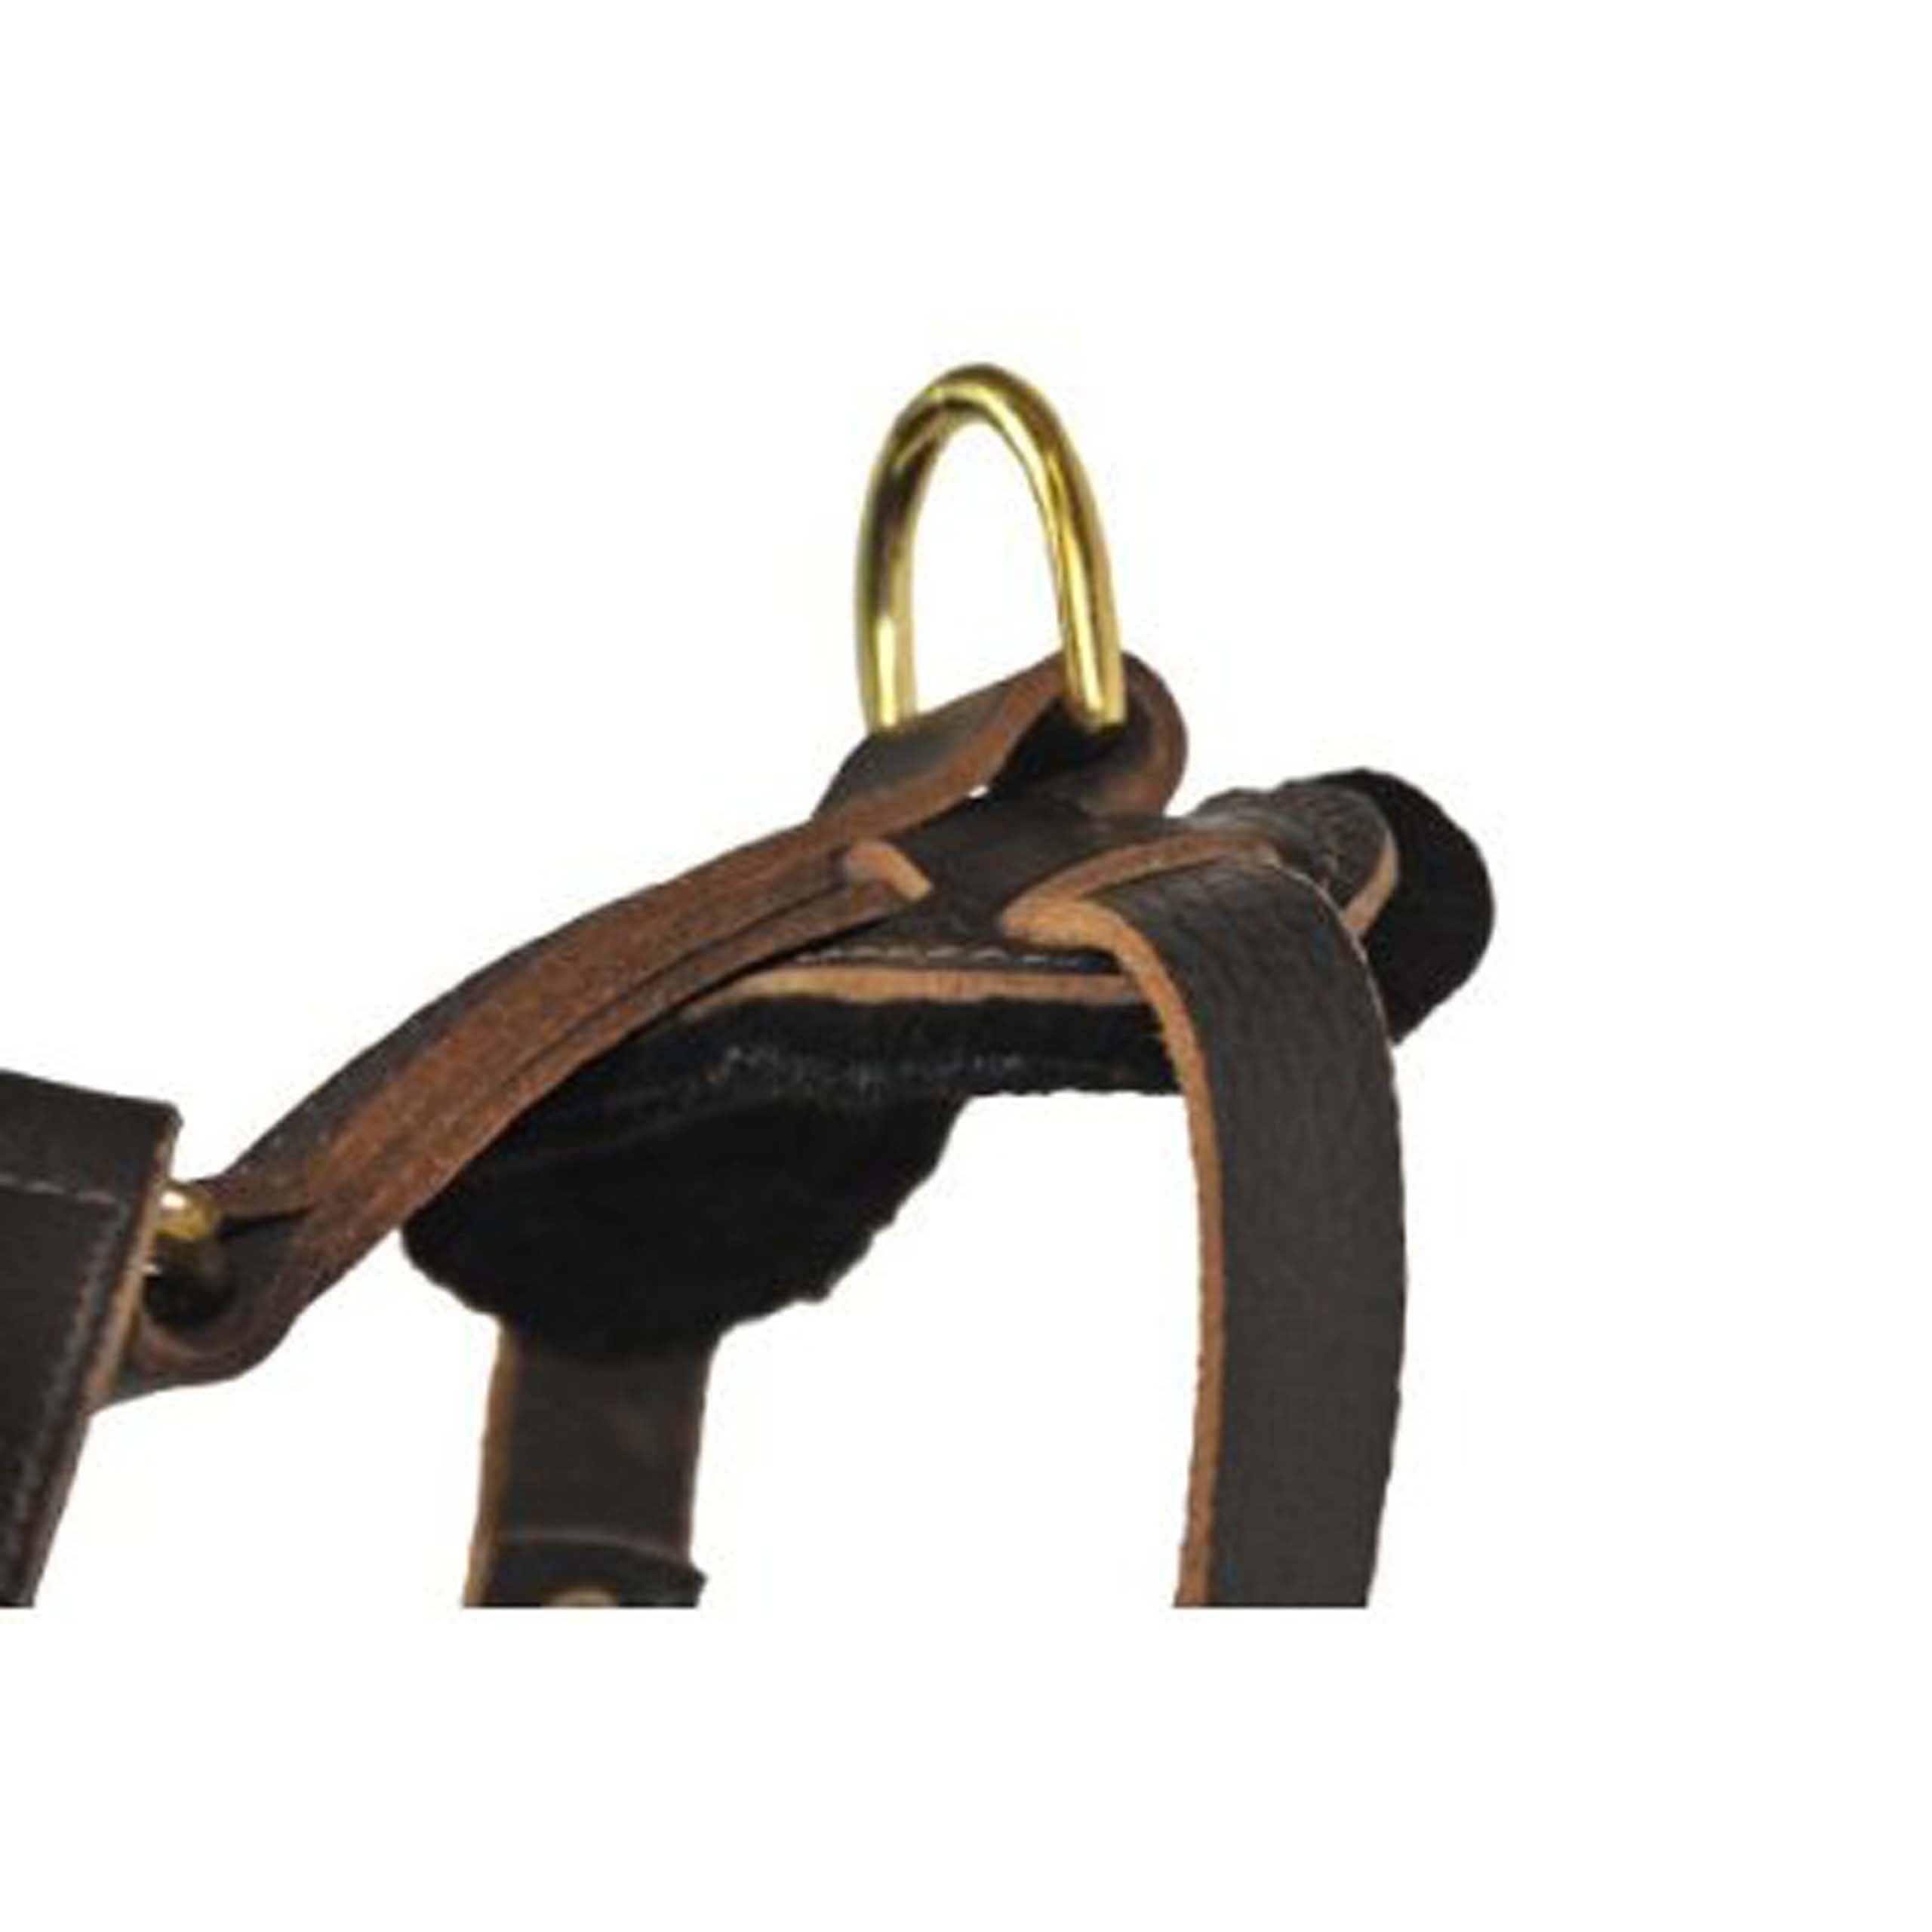 Dean and Tyler The Victory Solid Brass Hardware Dog Harness, Brown, Large - Fits Girth Size: 31-Inch to 41-Inch by Dean & Tyler (Image #5)